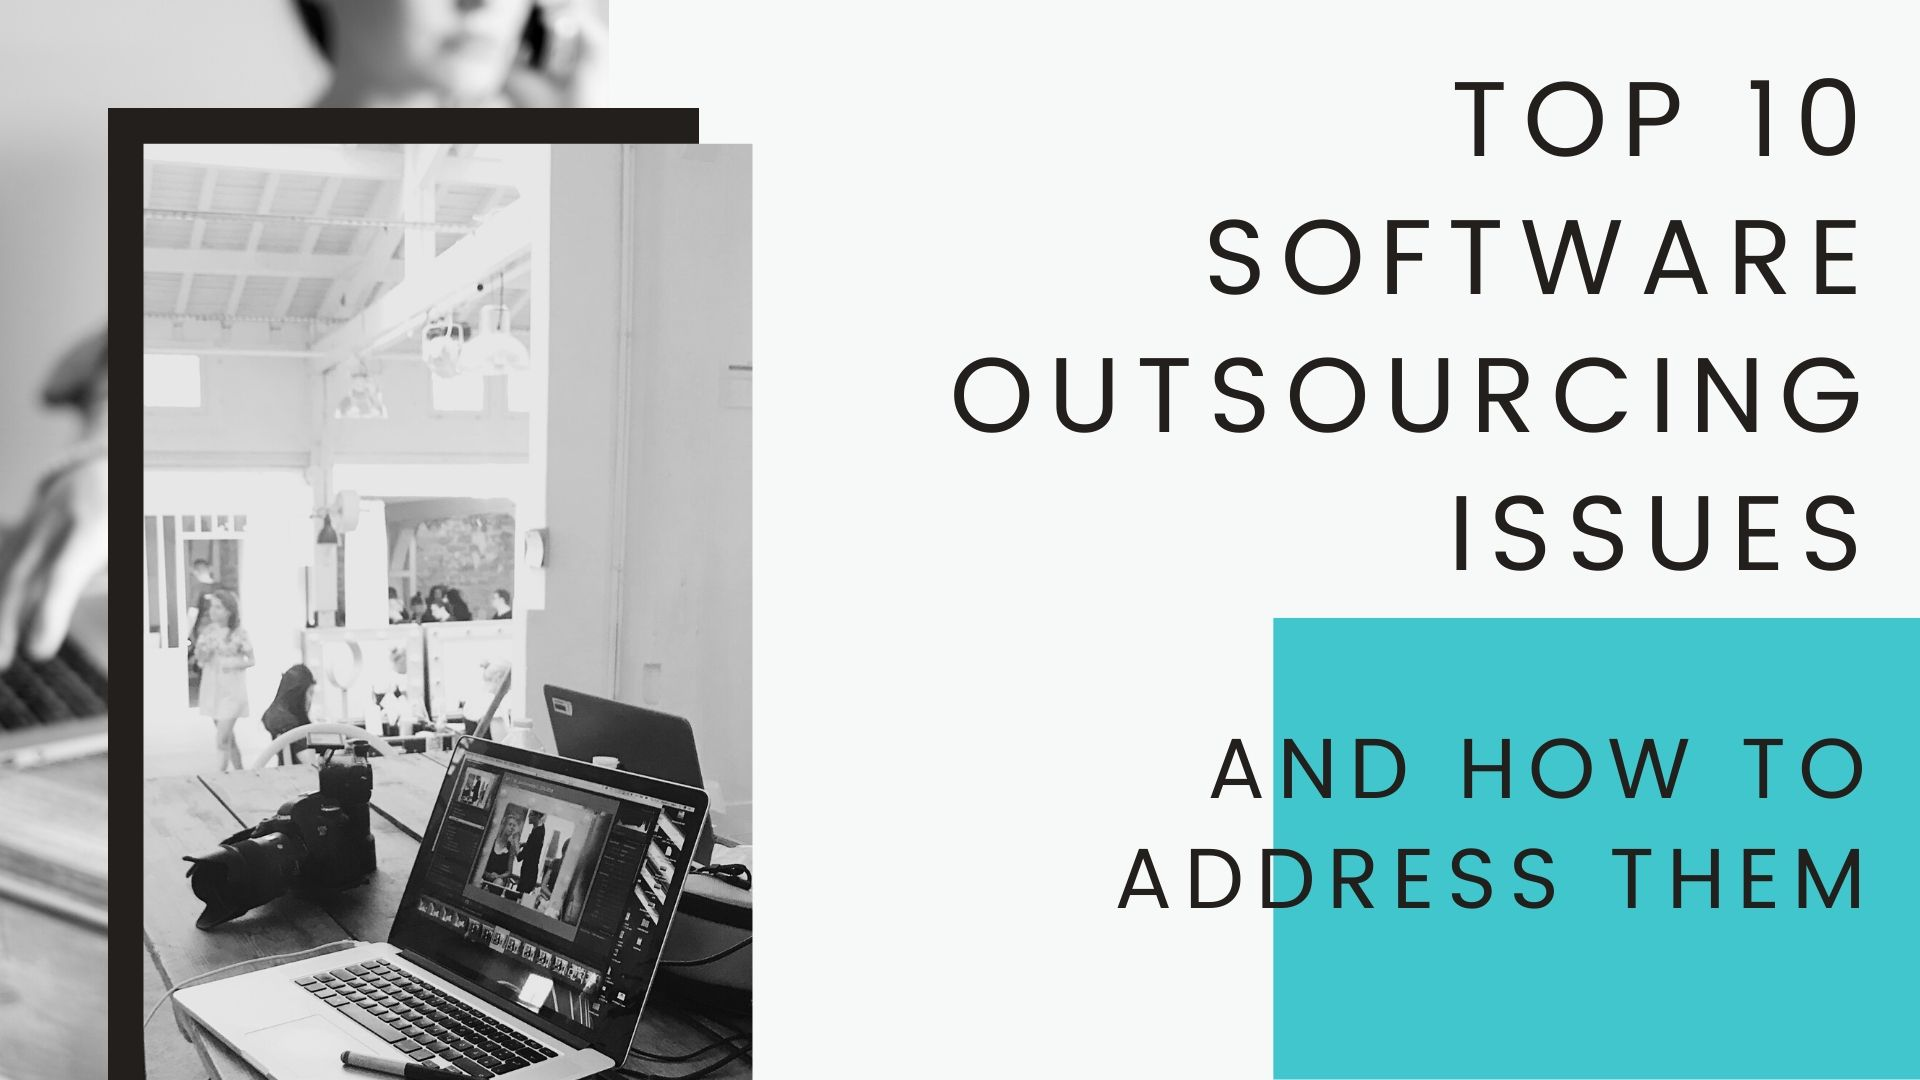 TOP 10 SOFTWARE OUTSOURCING ISSUES AND HOW TO ADDRESS THEM